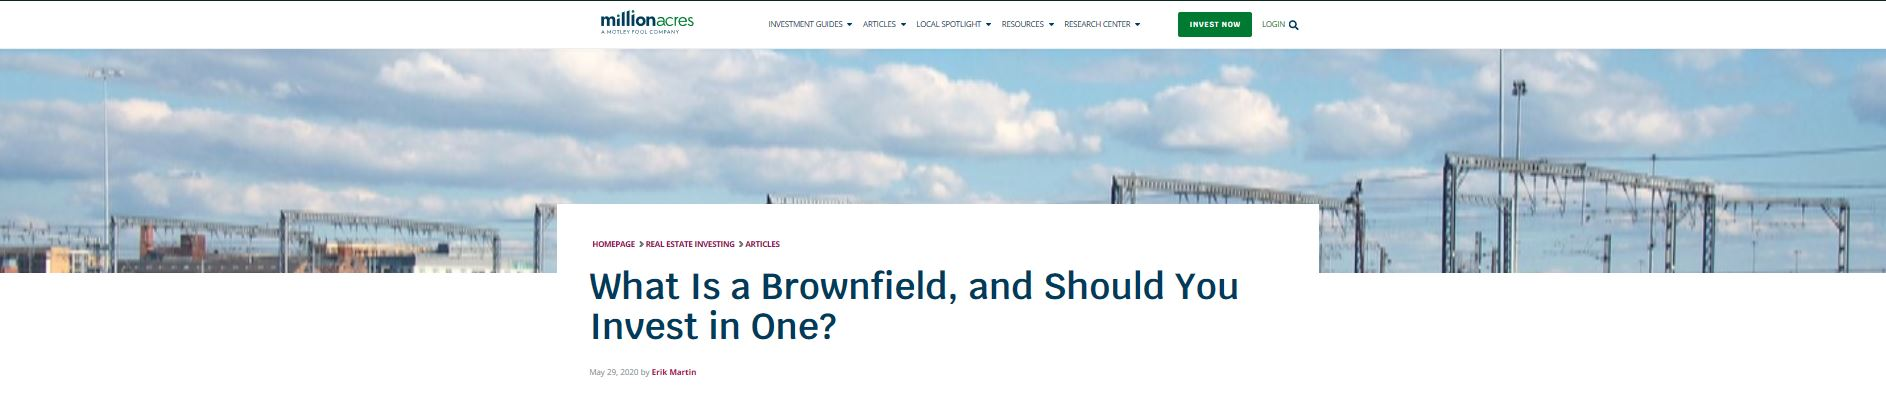 Suzanne Hollander discusses What is a Brownfield Property and Should you Invest in One